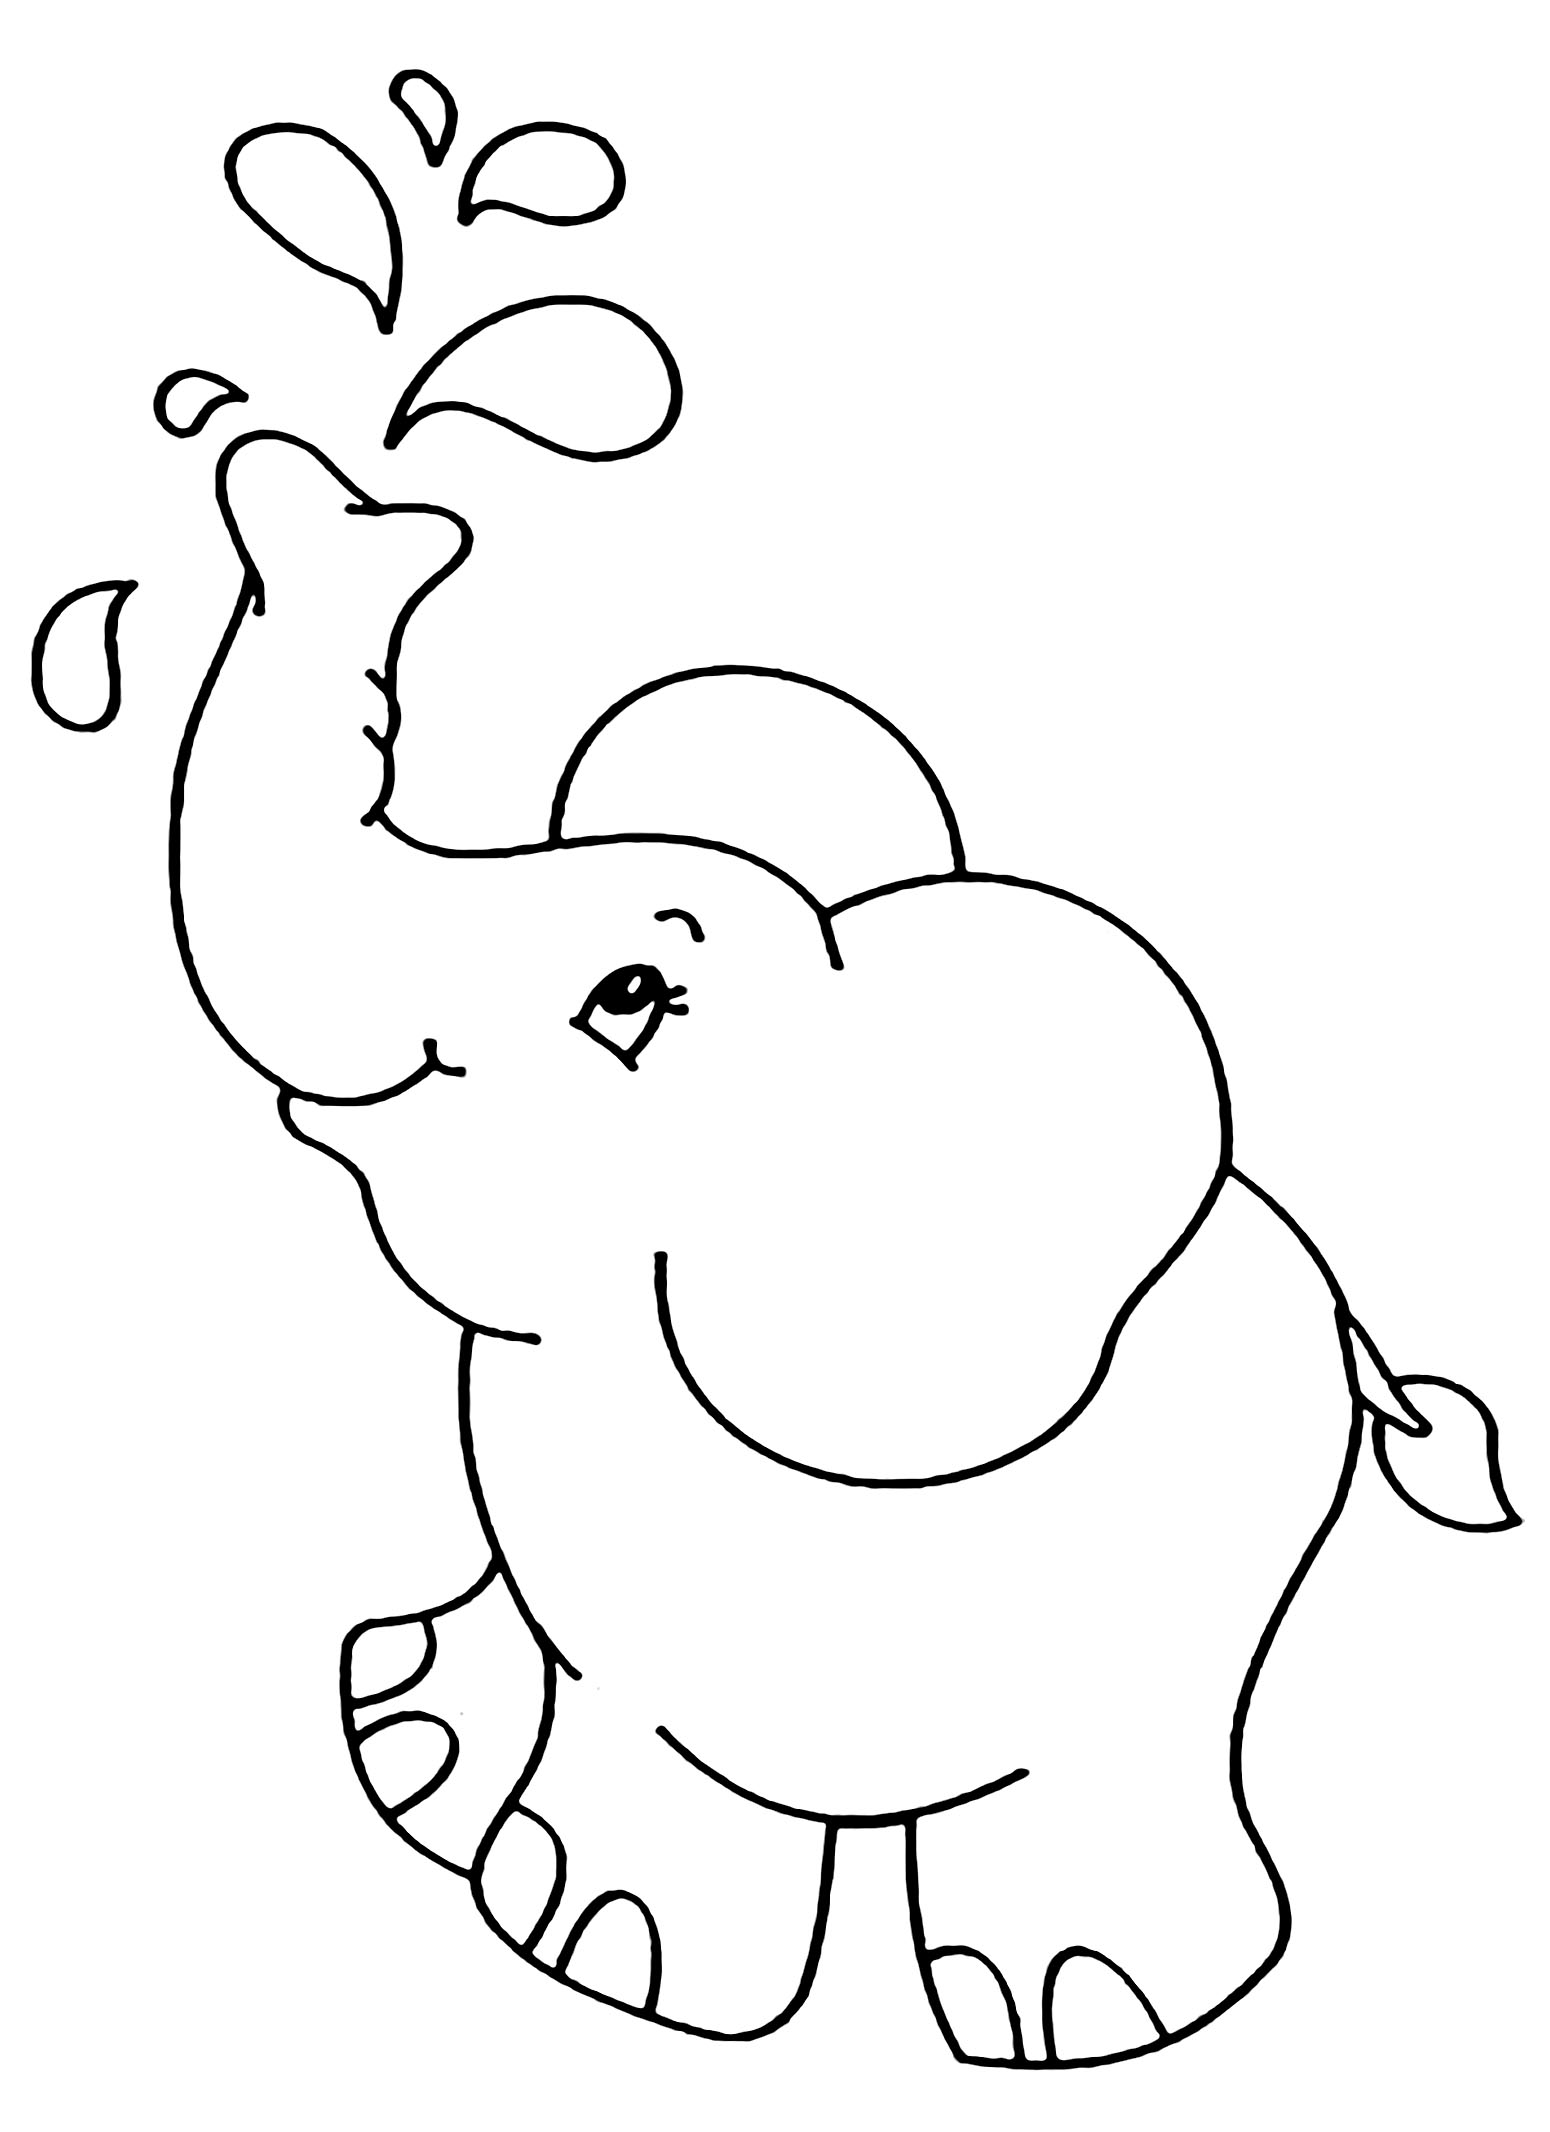 coloring pictures elephant elephant coloring pages free download on clipartmag pictures coloring elephant